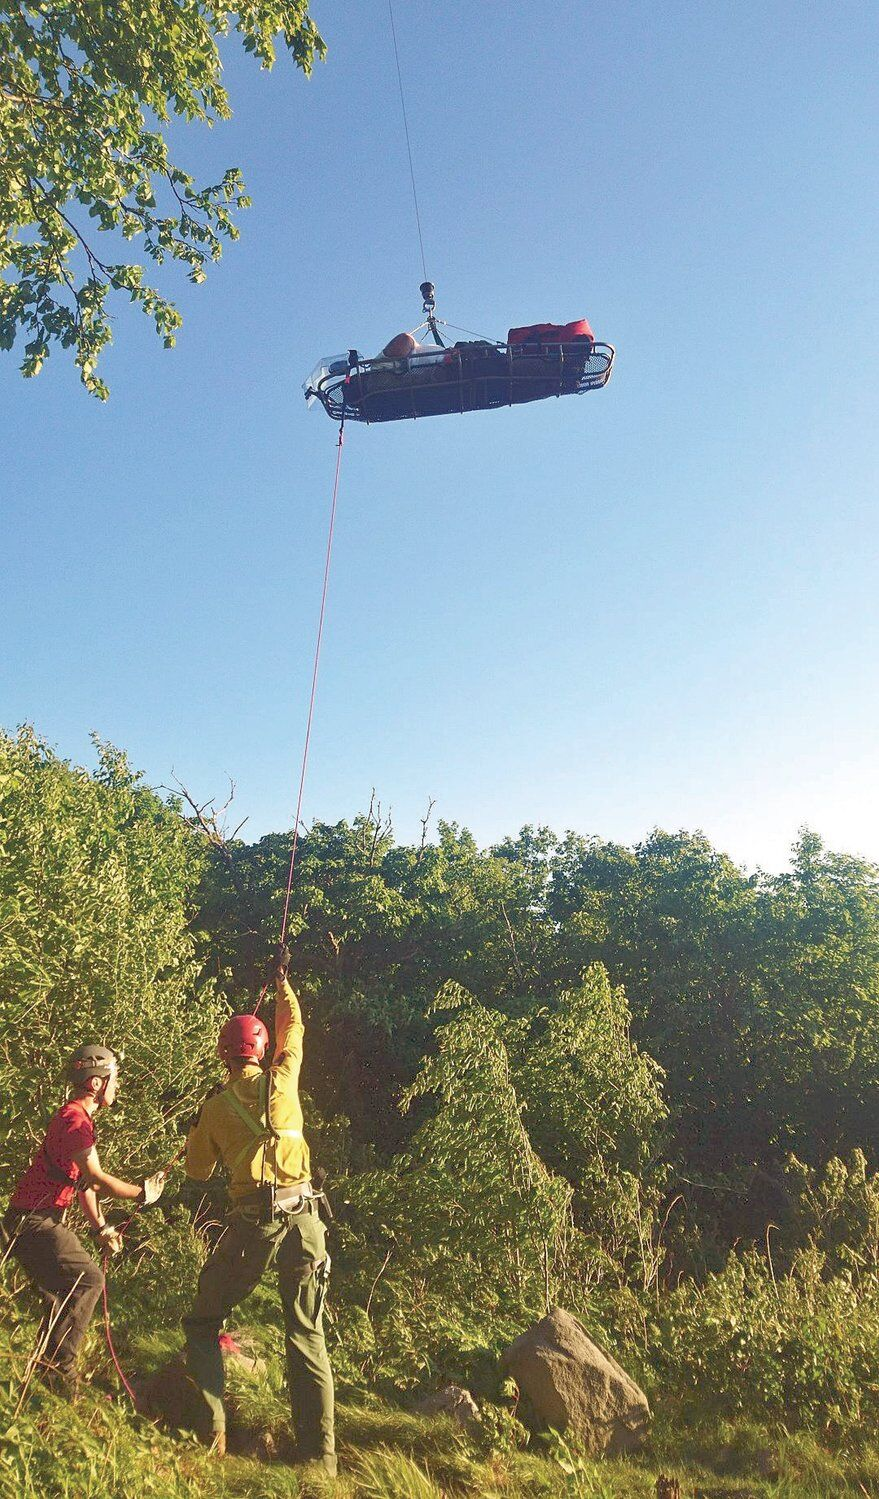 Stricken hiker airlifted from Long Trail